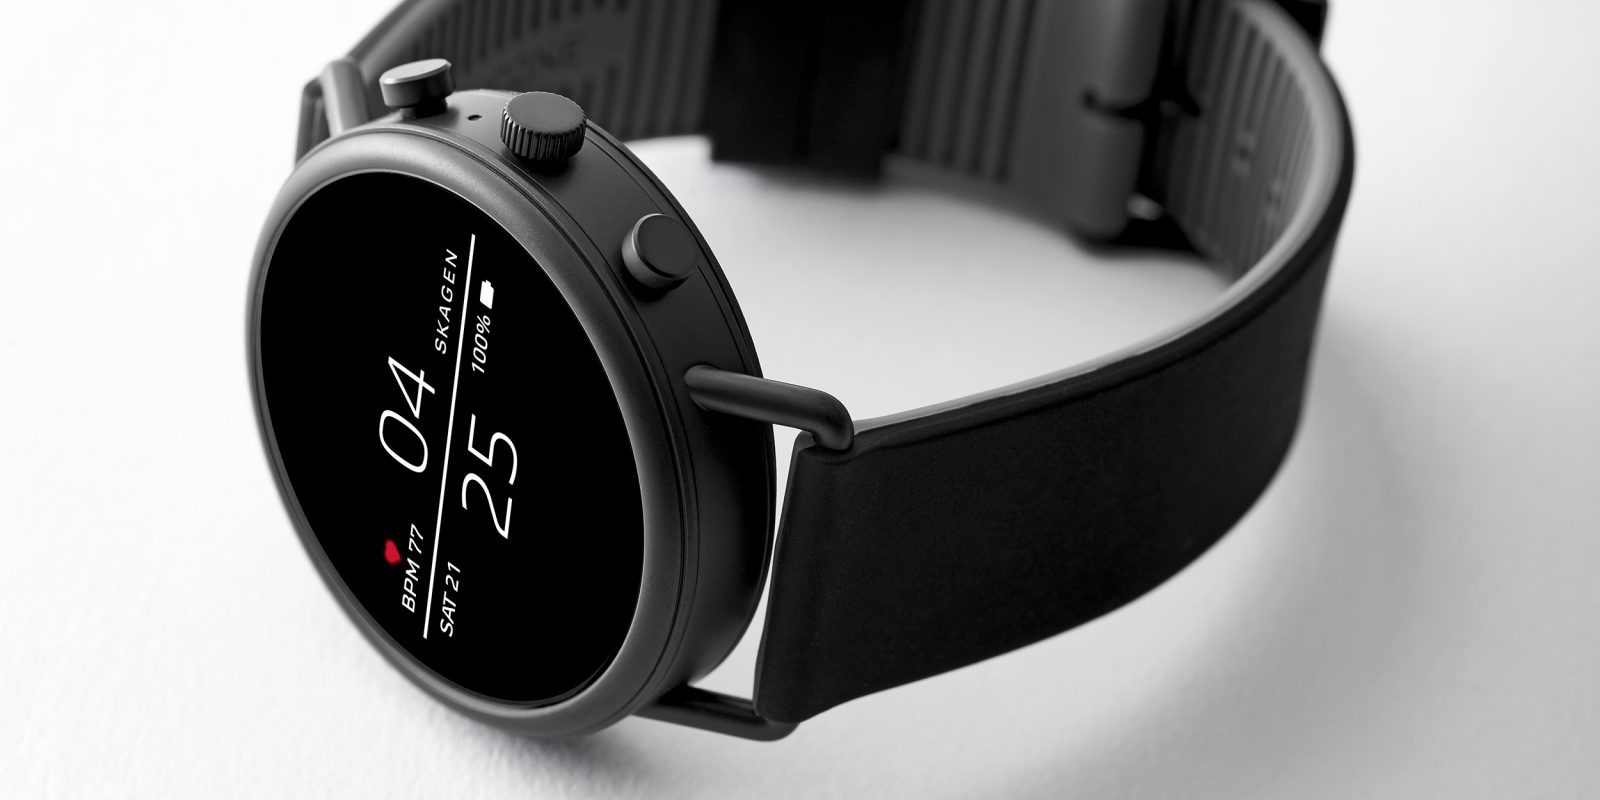 Skagen Falster 2 goes official w/ NFC, heart rate monitor